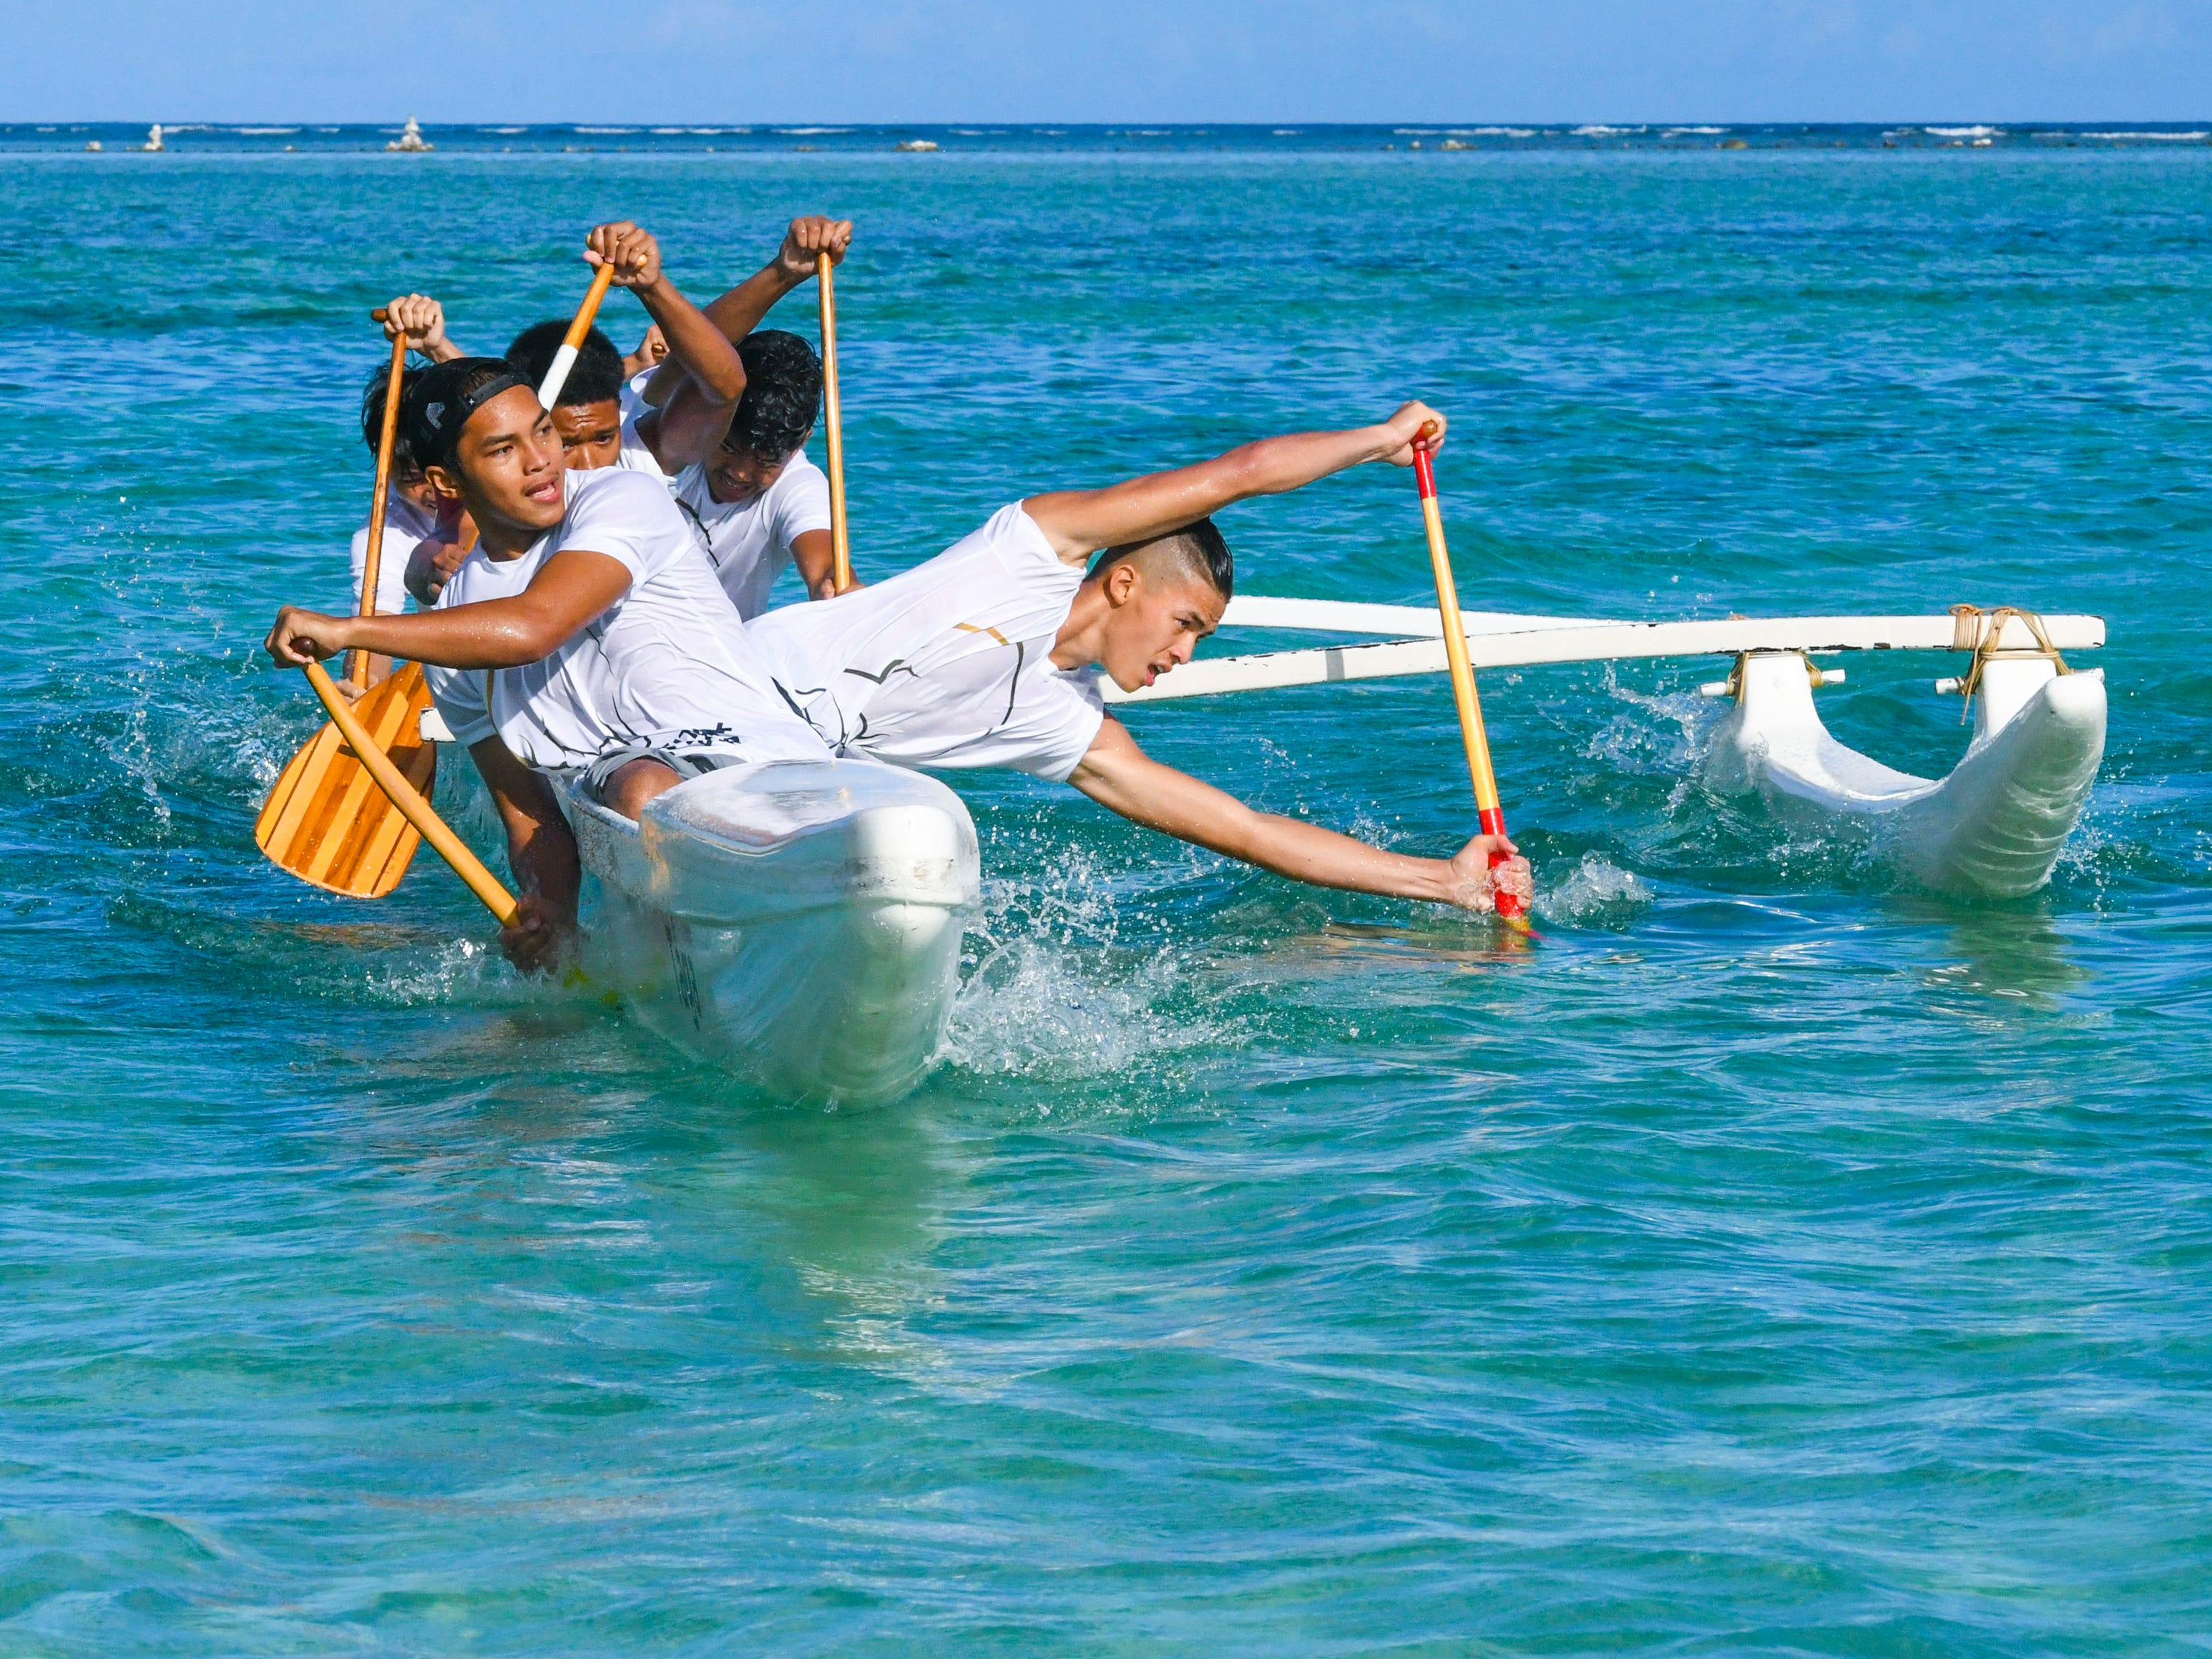 Paddlers from Tiyan High School turn their canoe as they compete against other teams in the waters off Matapang Beach during an IIAAG Paddling competition preliminary race in Tumon on Saturday, May 11, 2019.